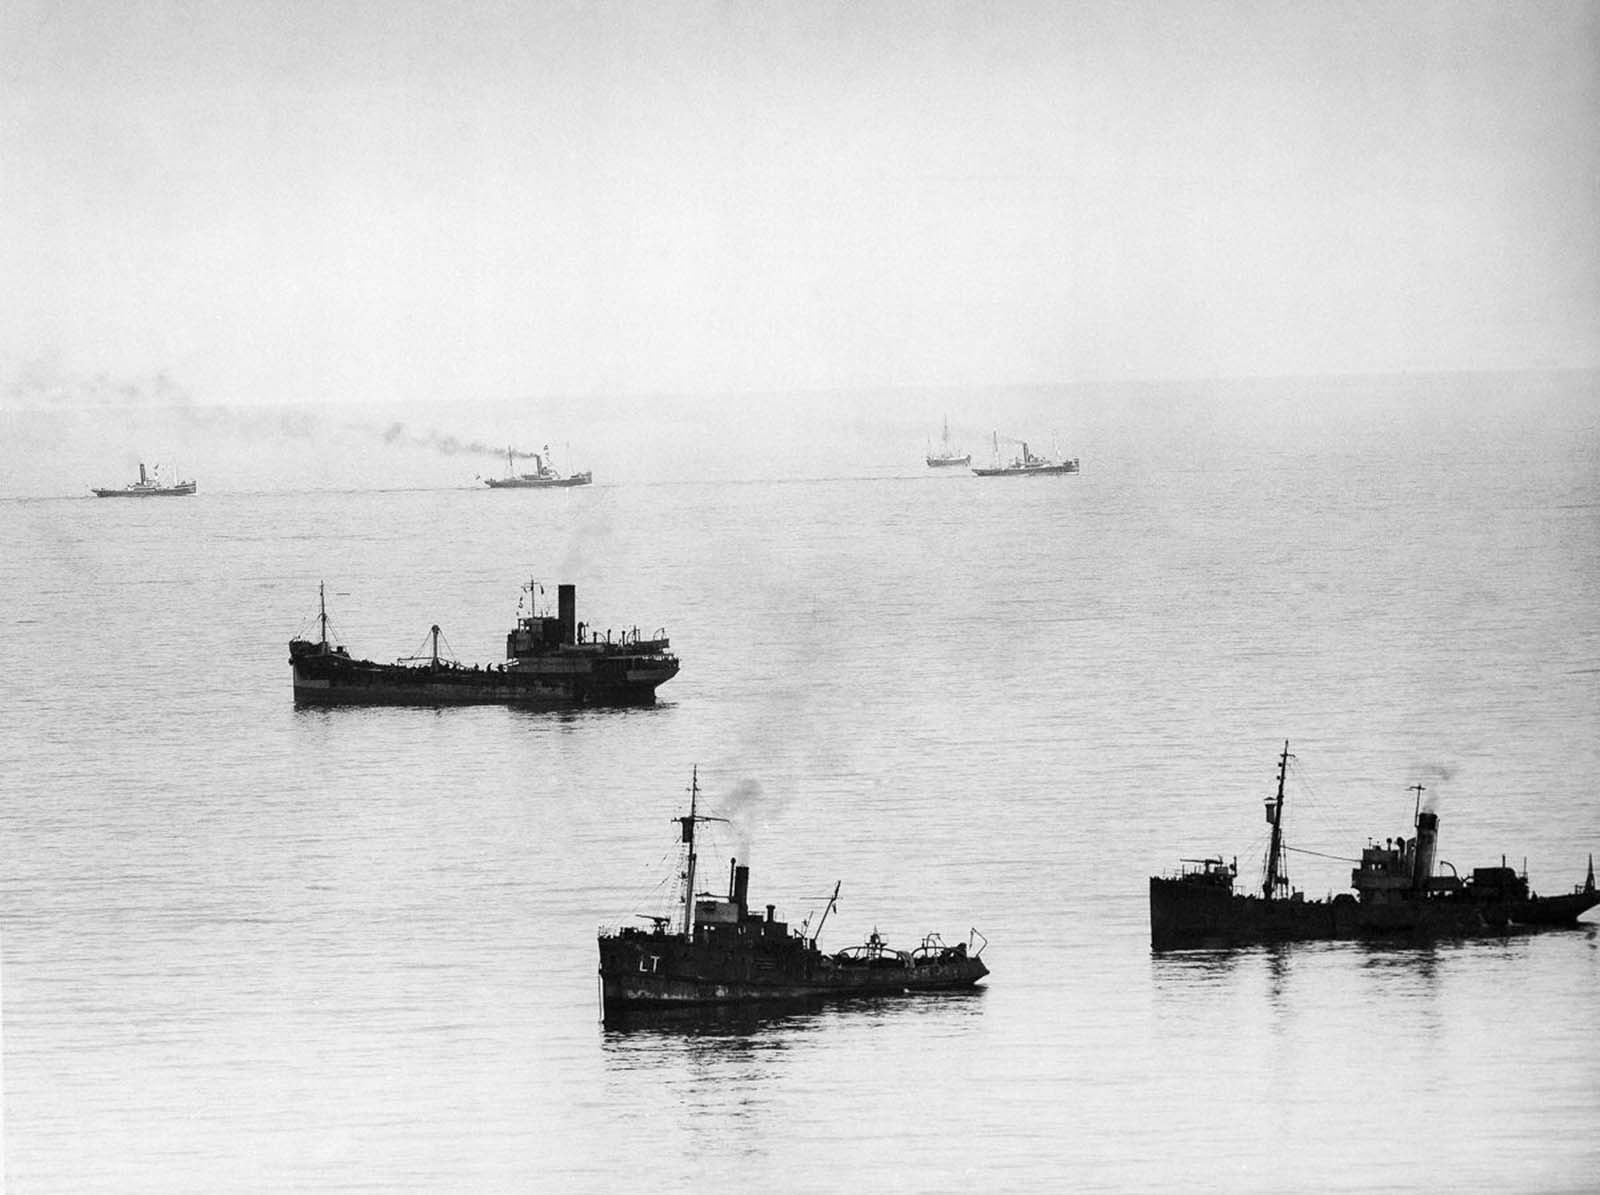 Allied minesweepers work to clear the English Channel while a convoy of evacuation ships head for Dunkirk.